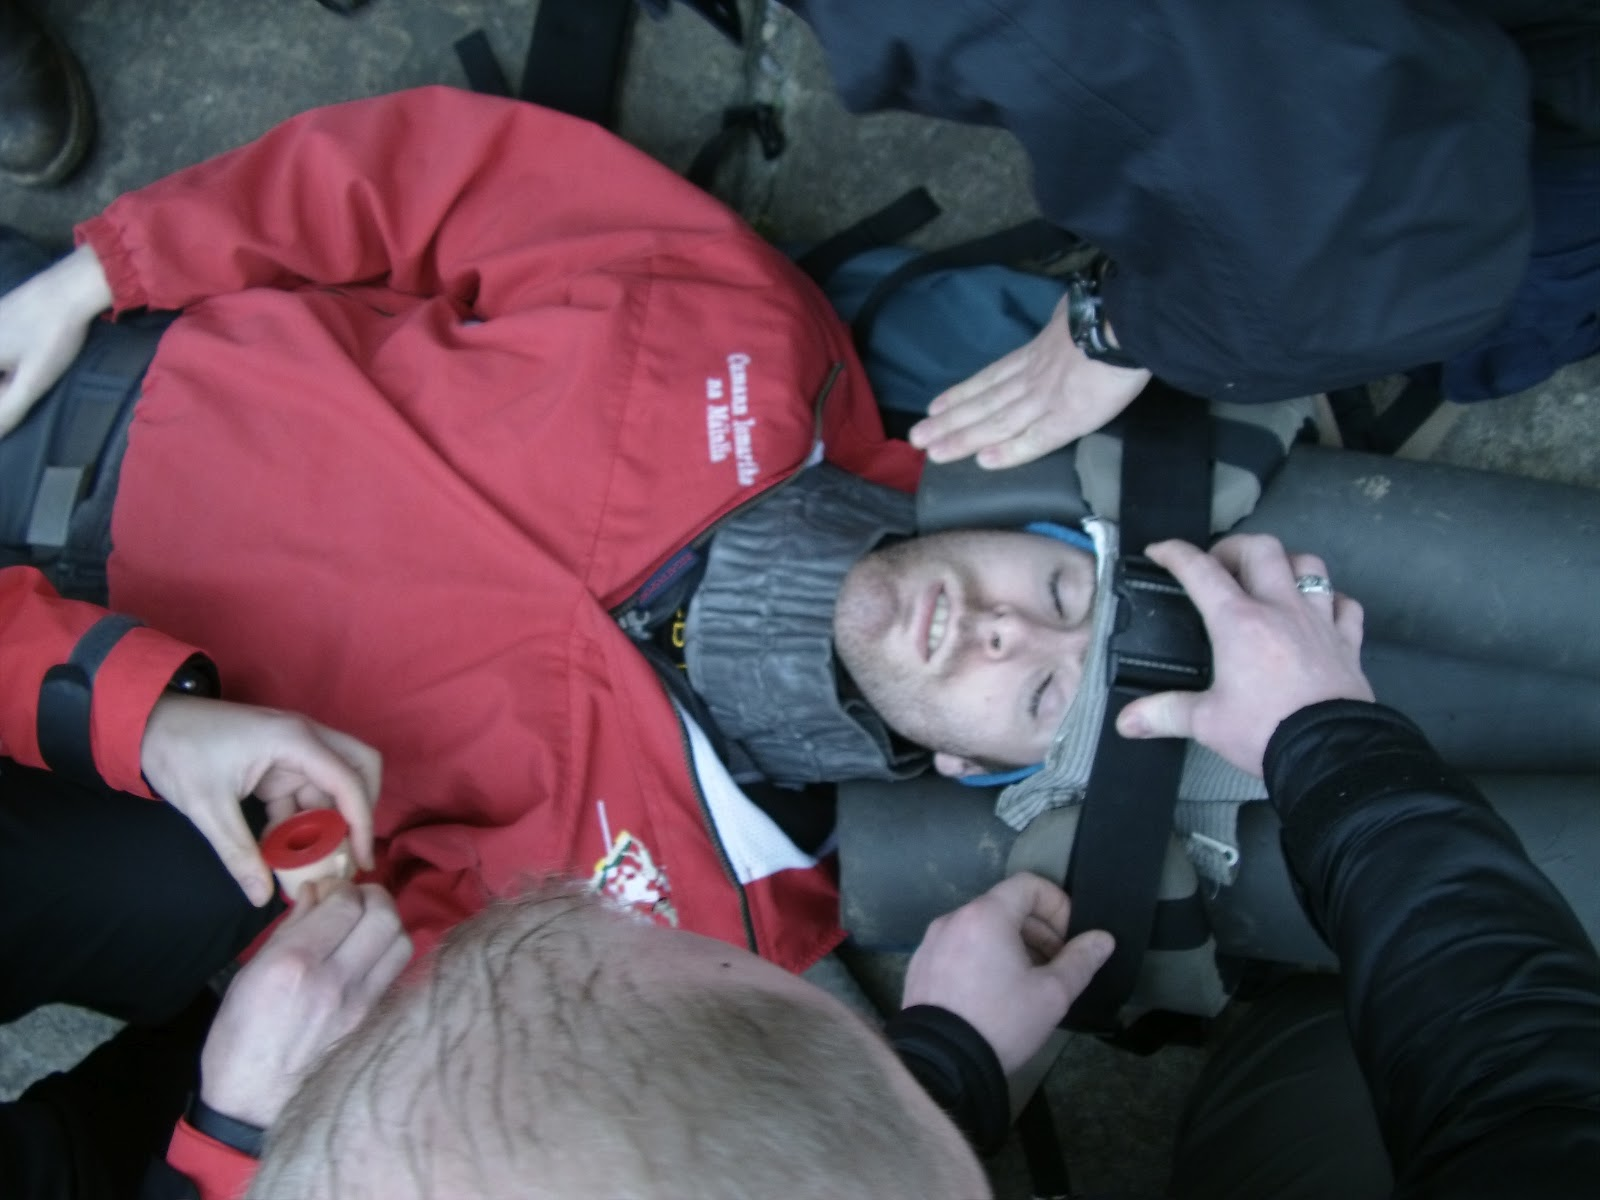 The students learned how to treat a femur fracture by using the -4.bp.blogspot.com